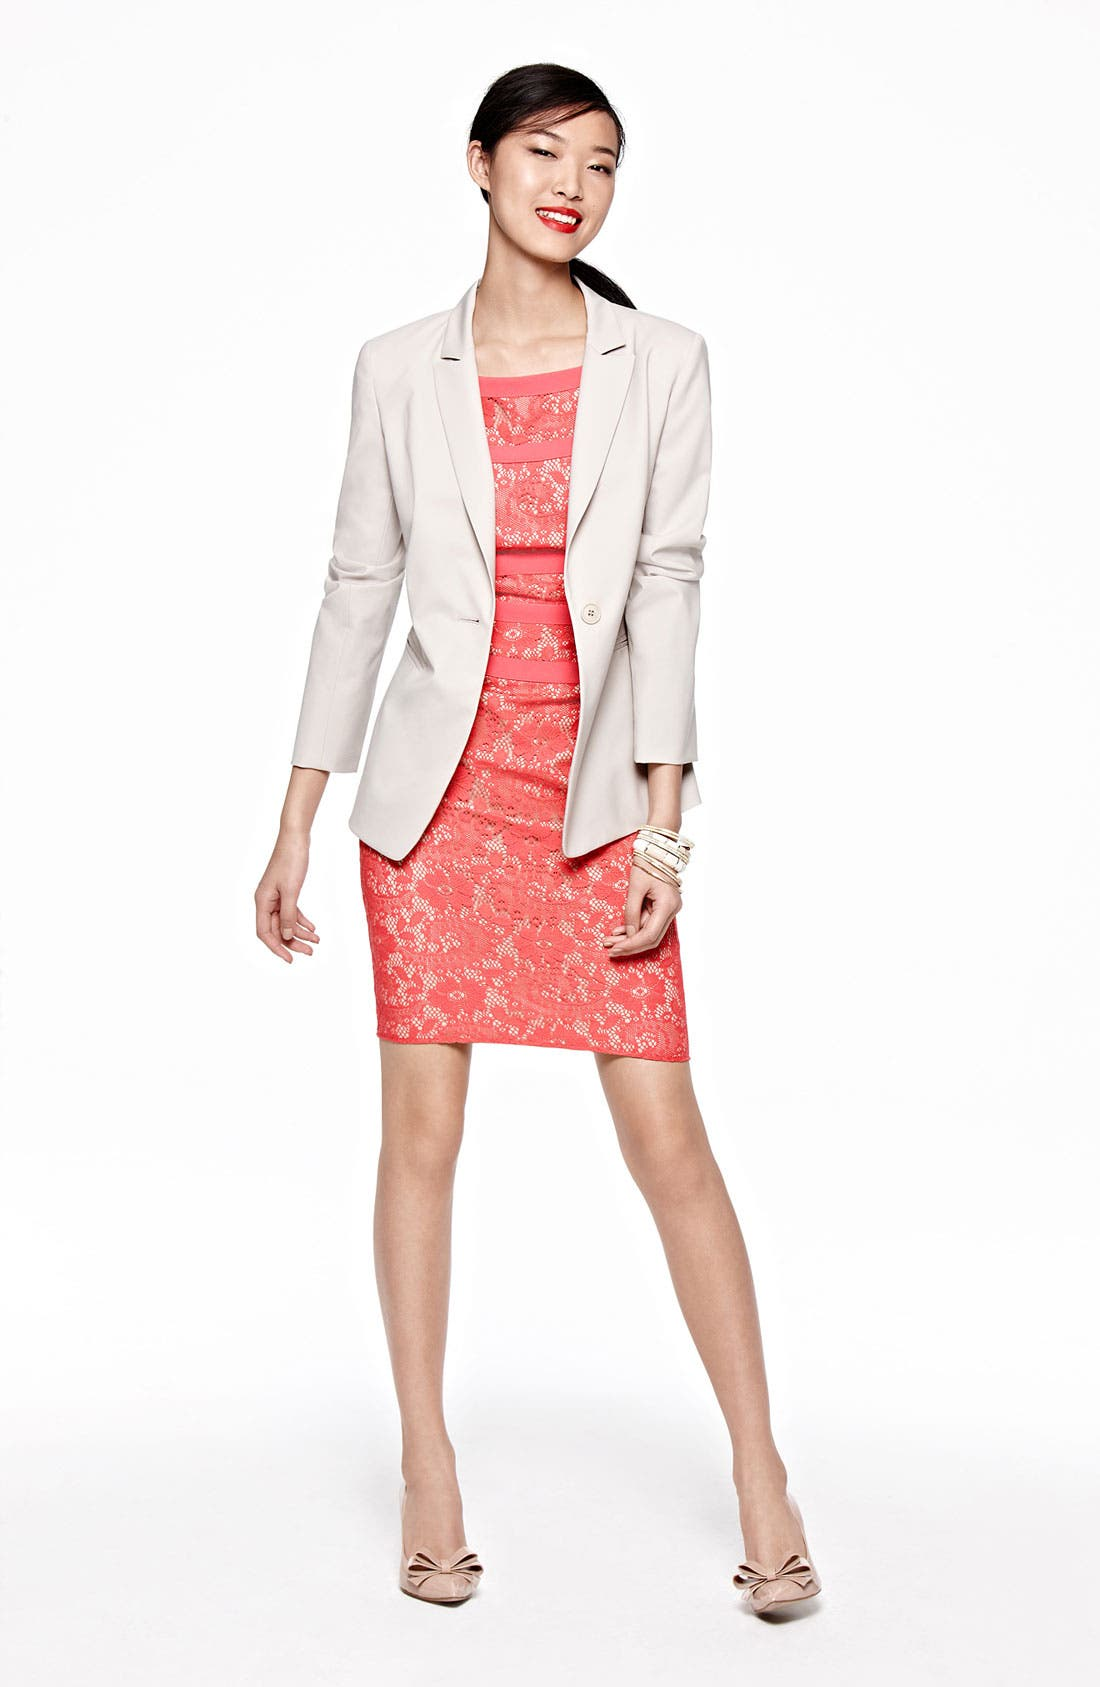 Alternate Image 1 Selected - Chaus Blazer, Adrianna Papell Dress & Accessories